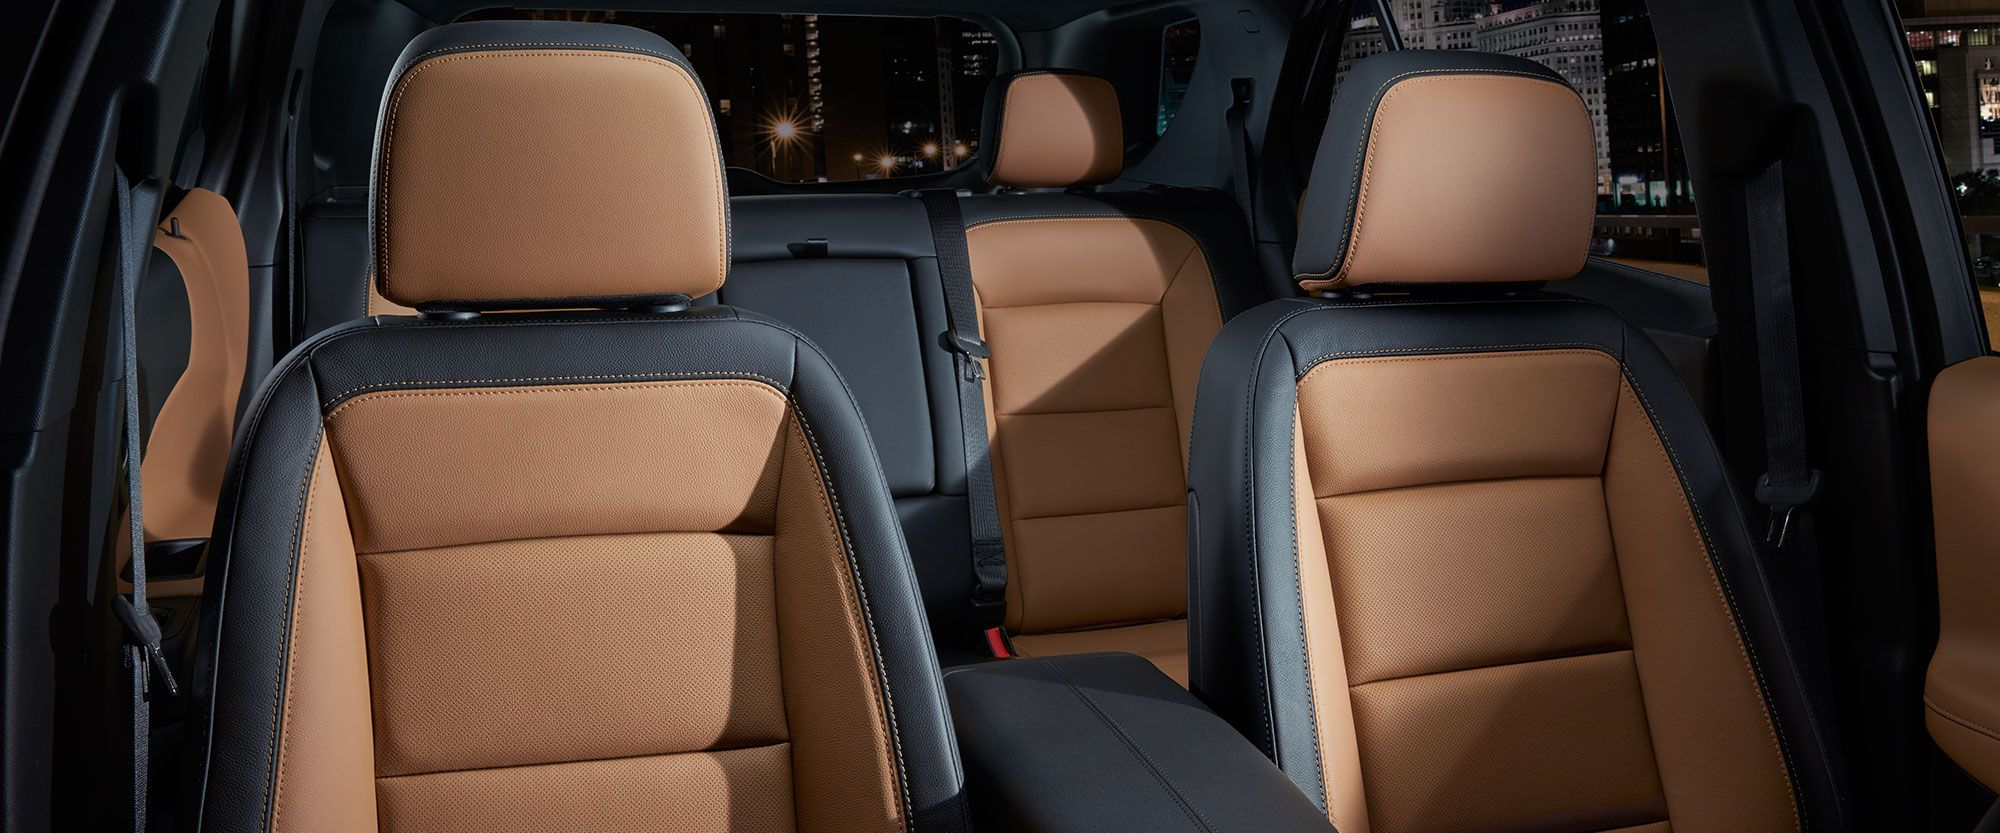 Luxurious Seating Options in the Equinox